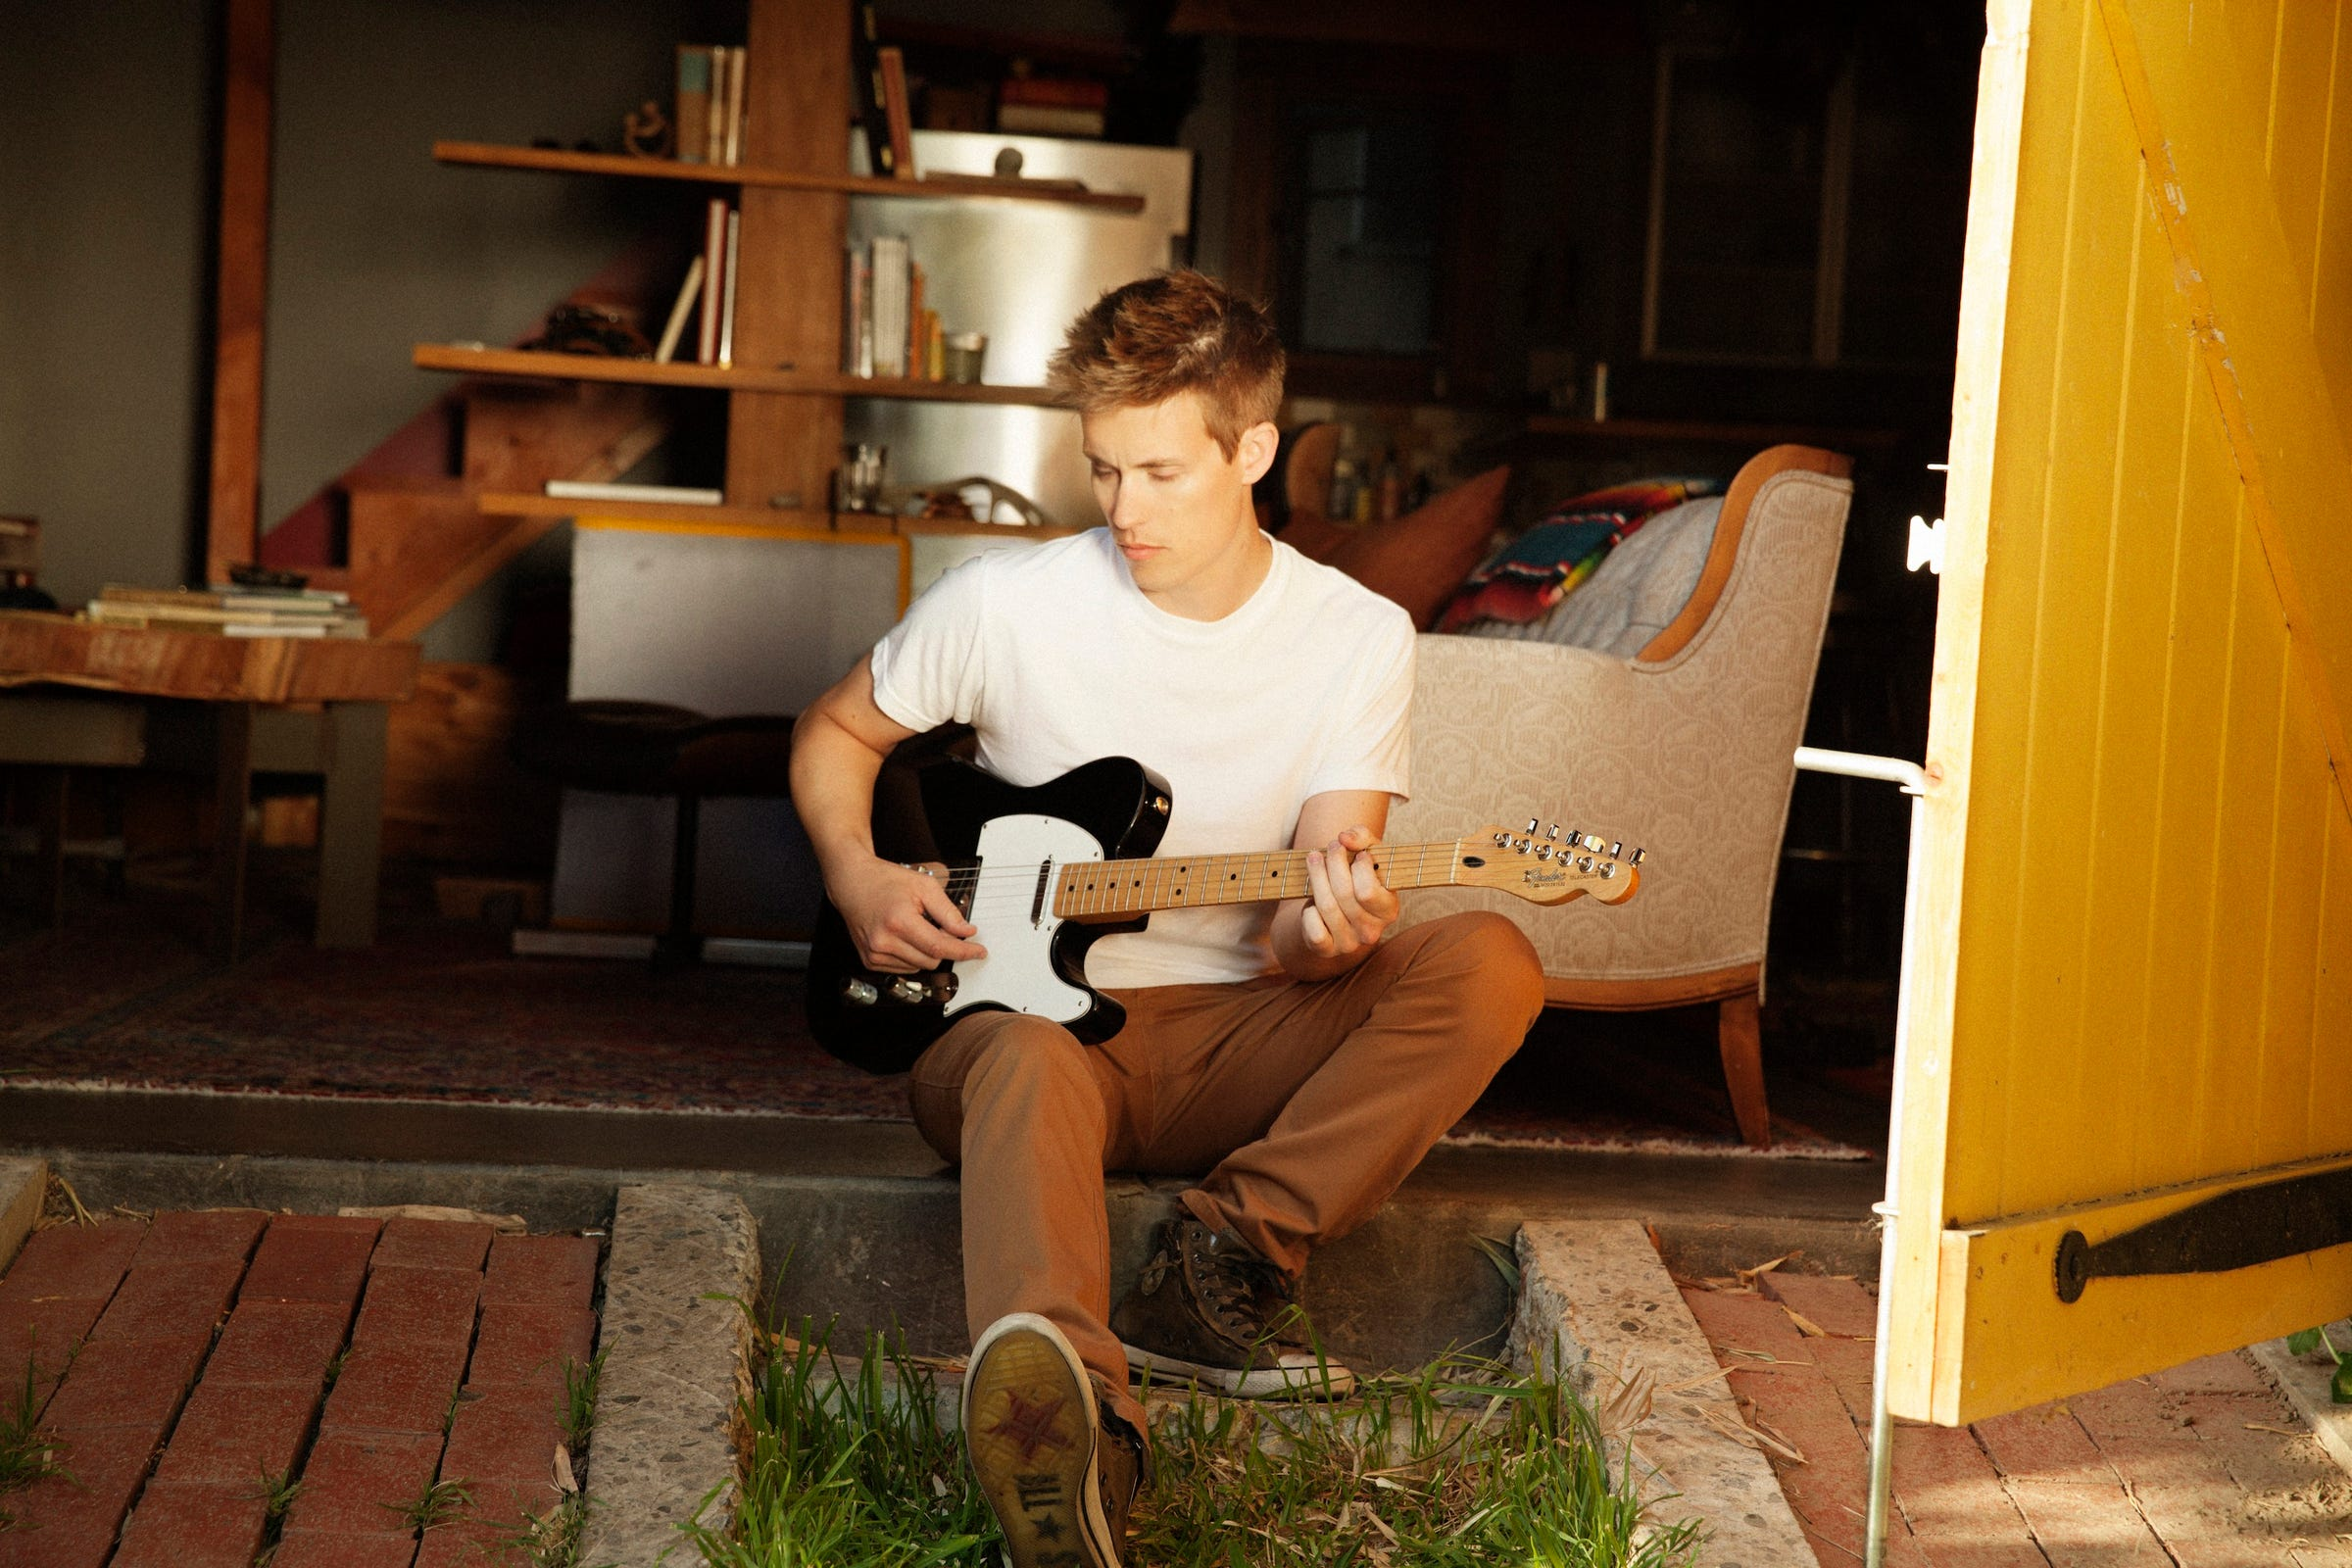 Jonny Lang, who turns 39 this month, was hailed as a teen guitar sensation in the late 1990s.